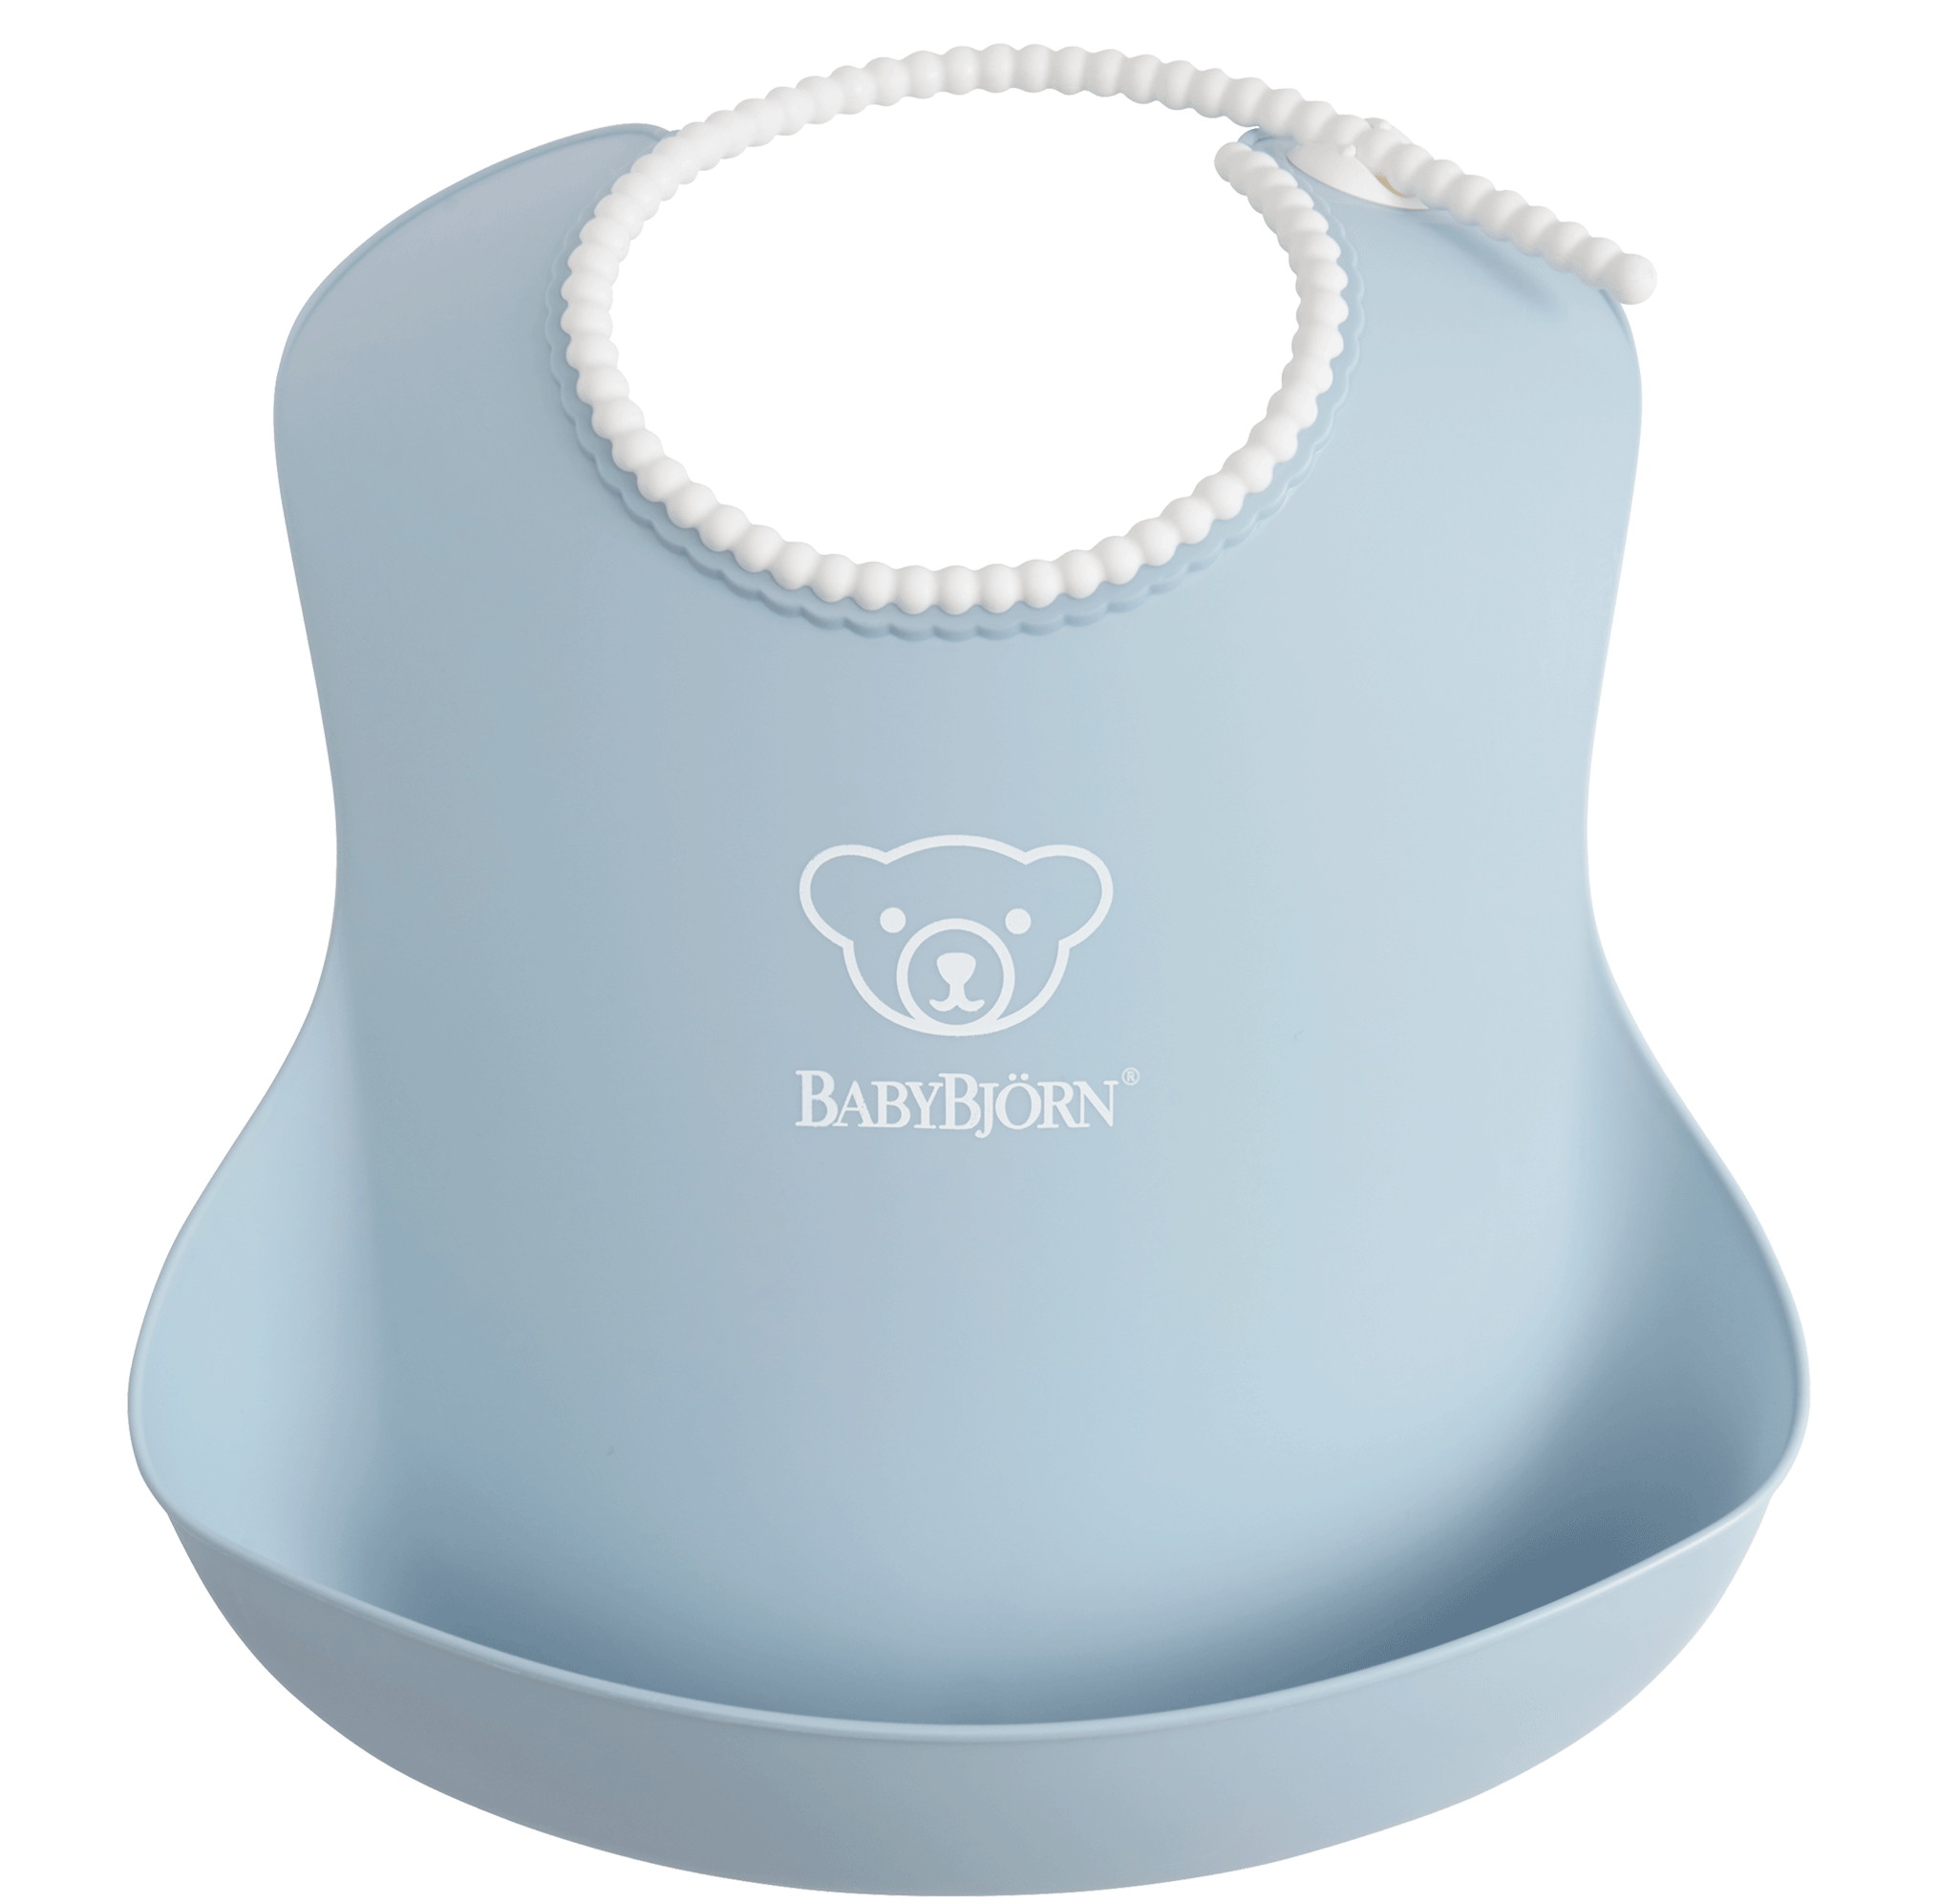 Baby Bib, Powder blue, with deep spill pocket to catch any mess - BABYBJÖRN